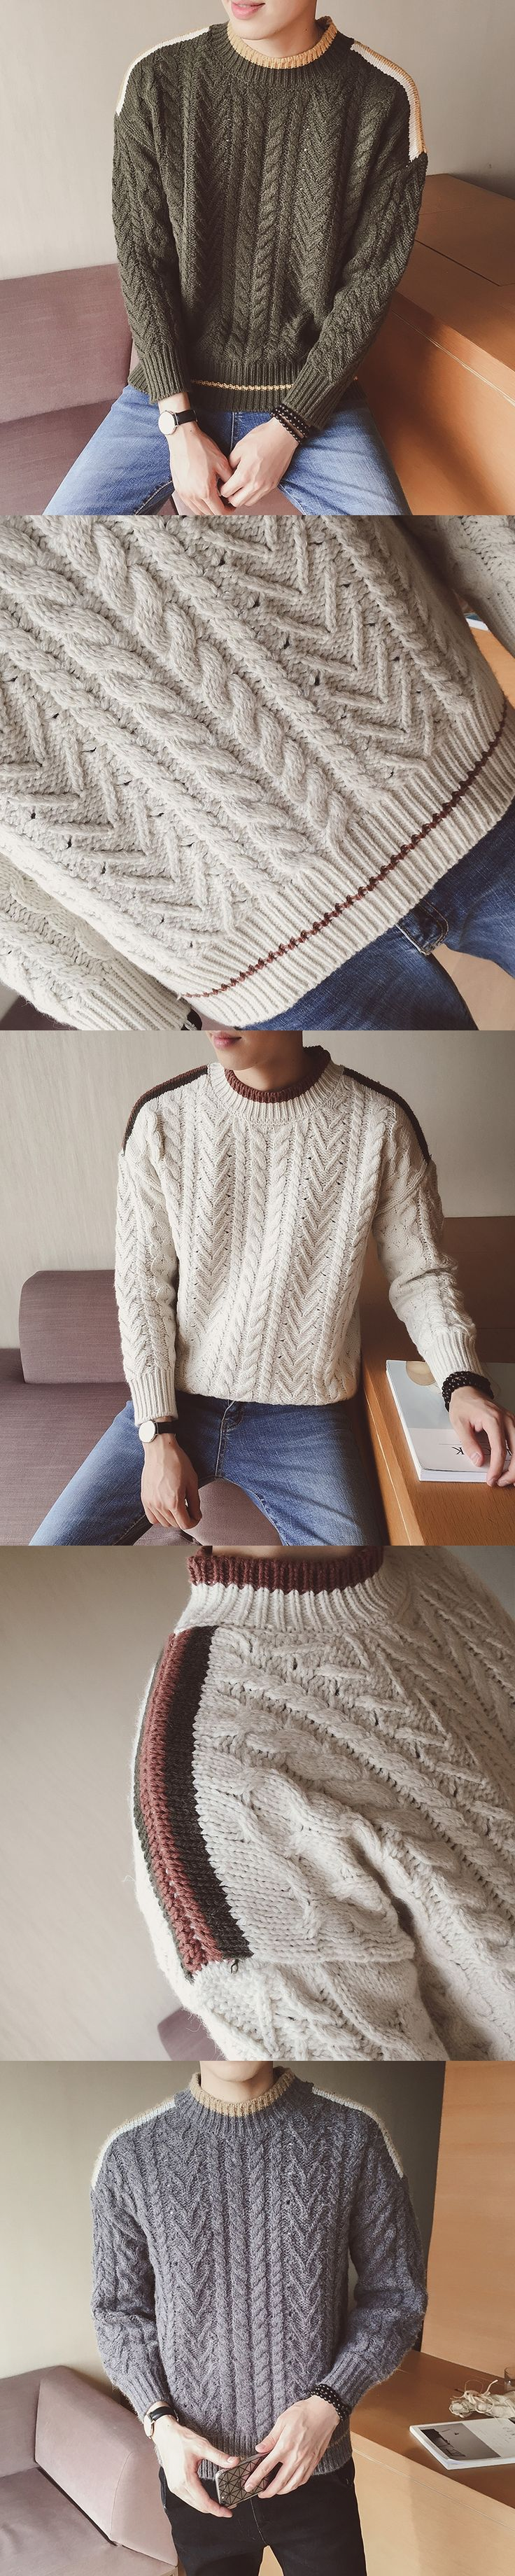 2017 Winter Men's Turtleneck Lovers Long Knit Sweater Warm Clothes Thickening Sleeve Outerwear Tops Casual Brand Knitwear